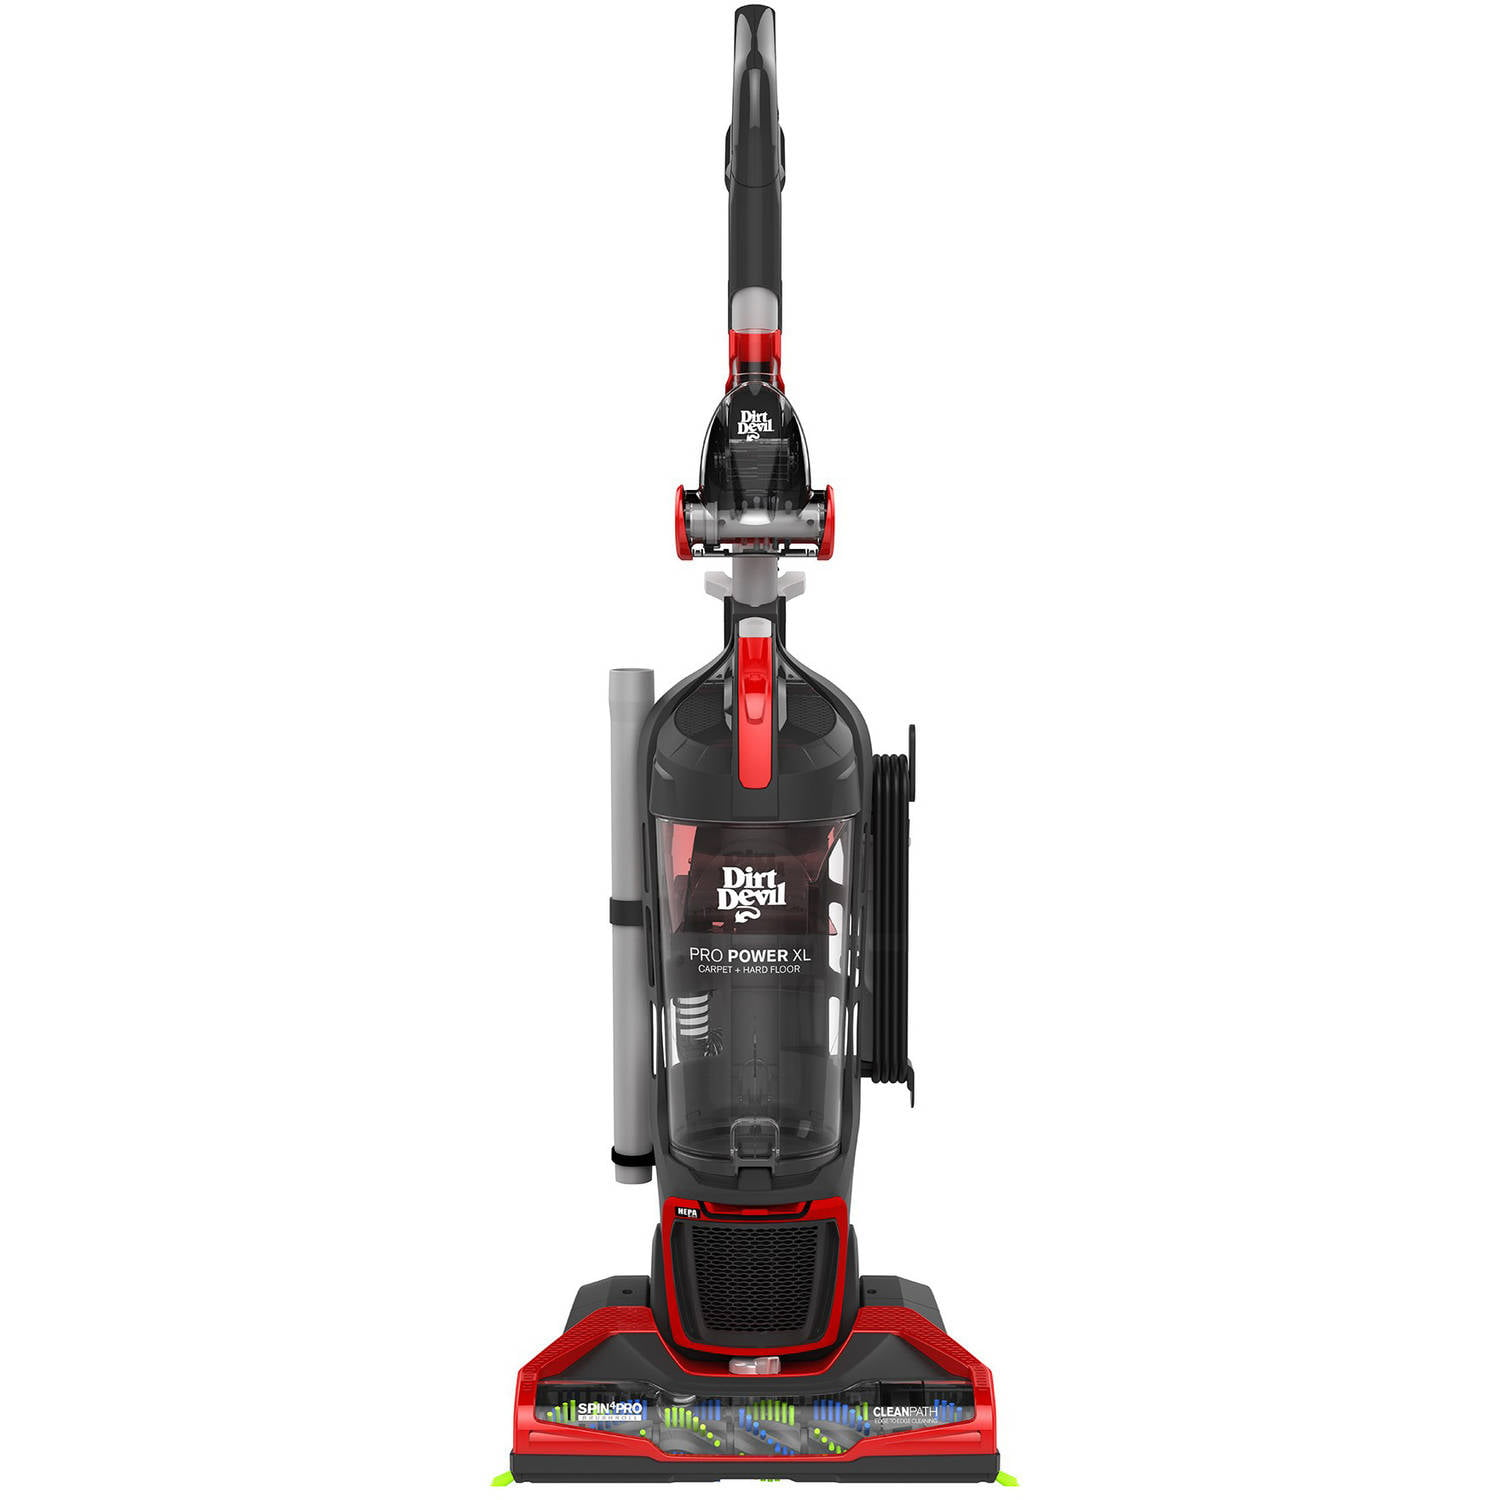 Dirt Devil Pro Power XL Bagless Upright Vacuum UD70180 Walmartcom